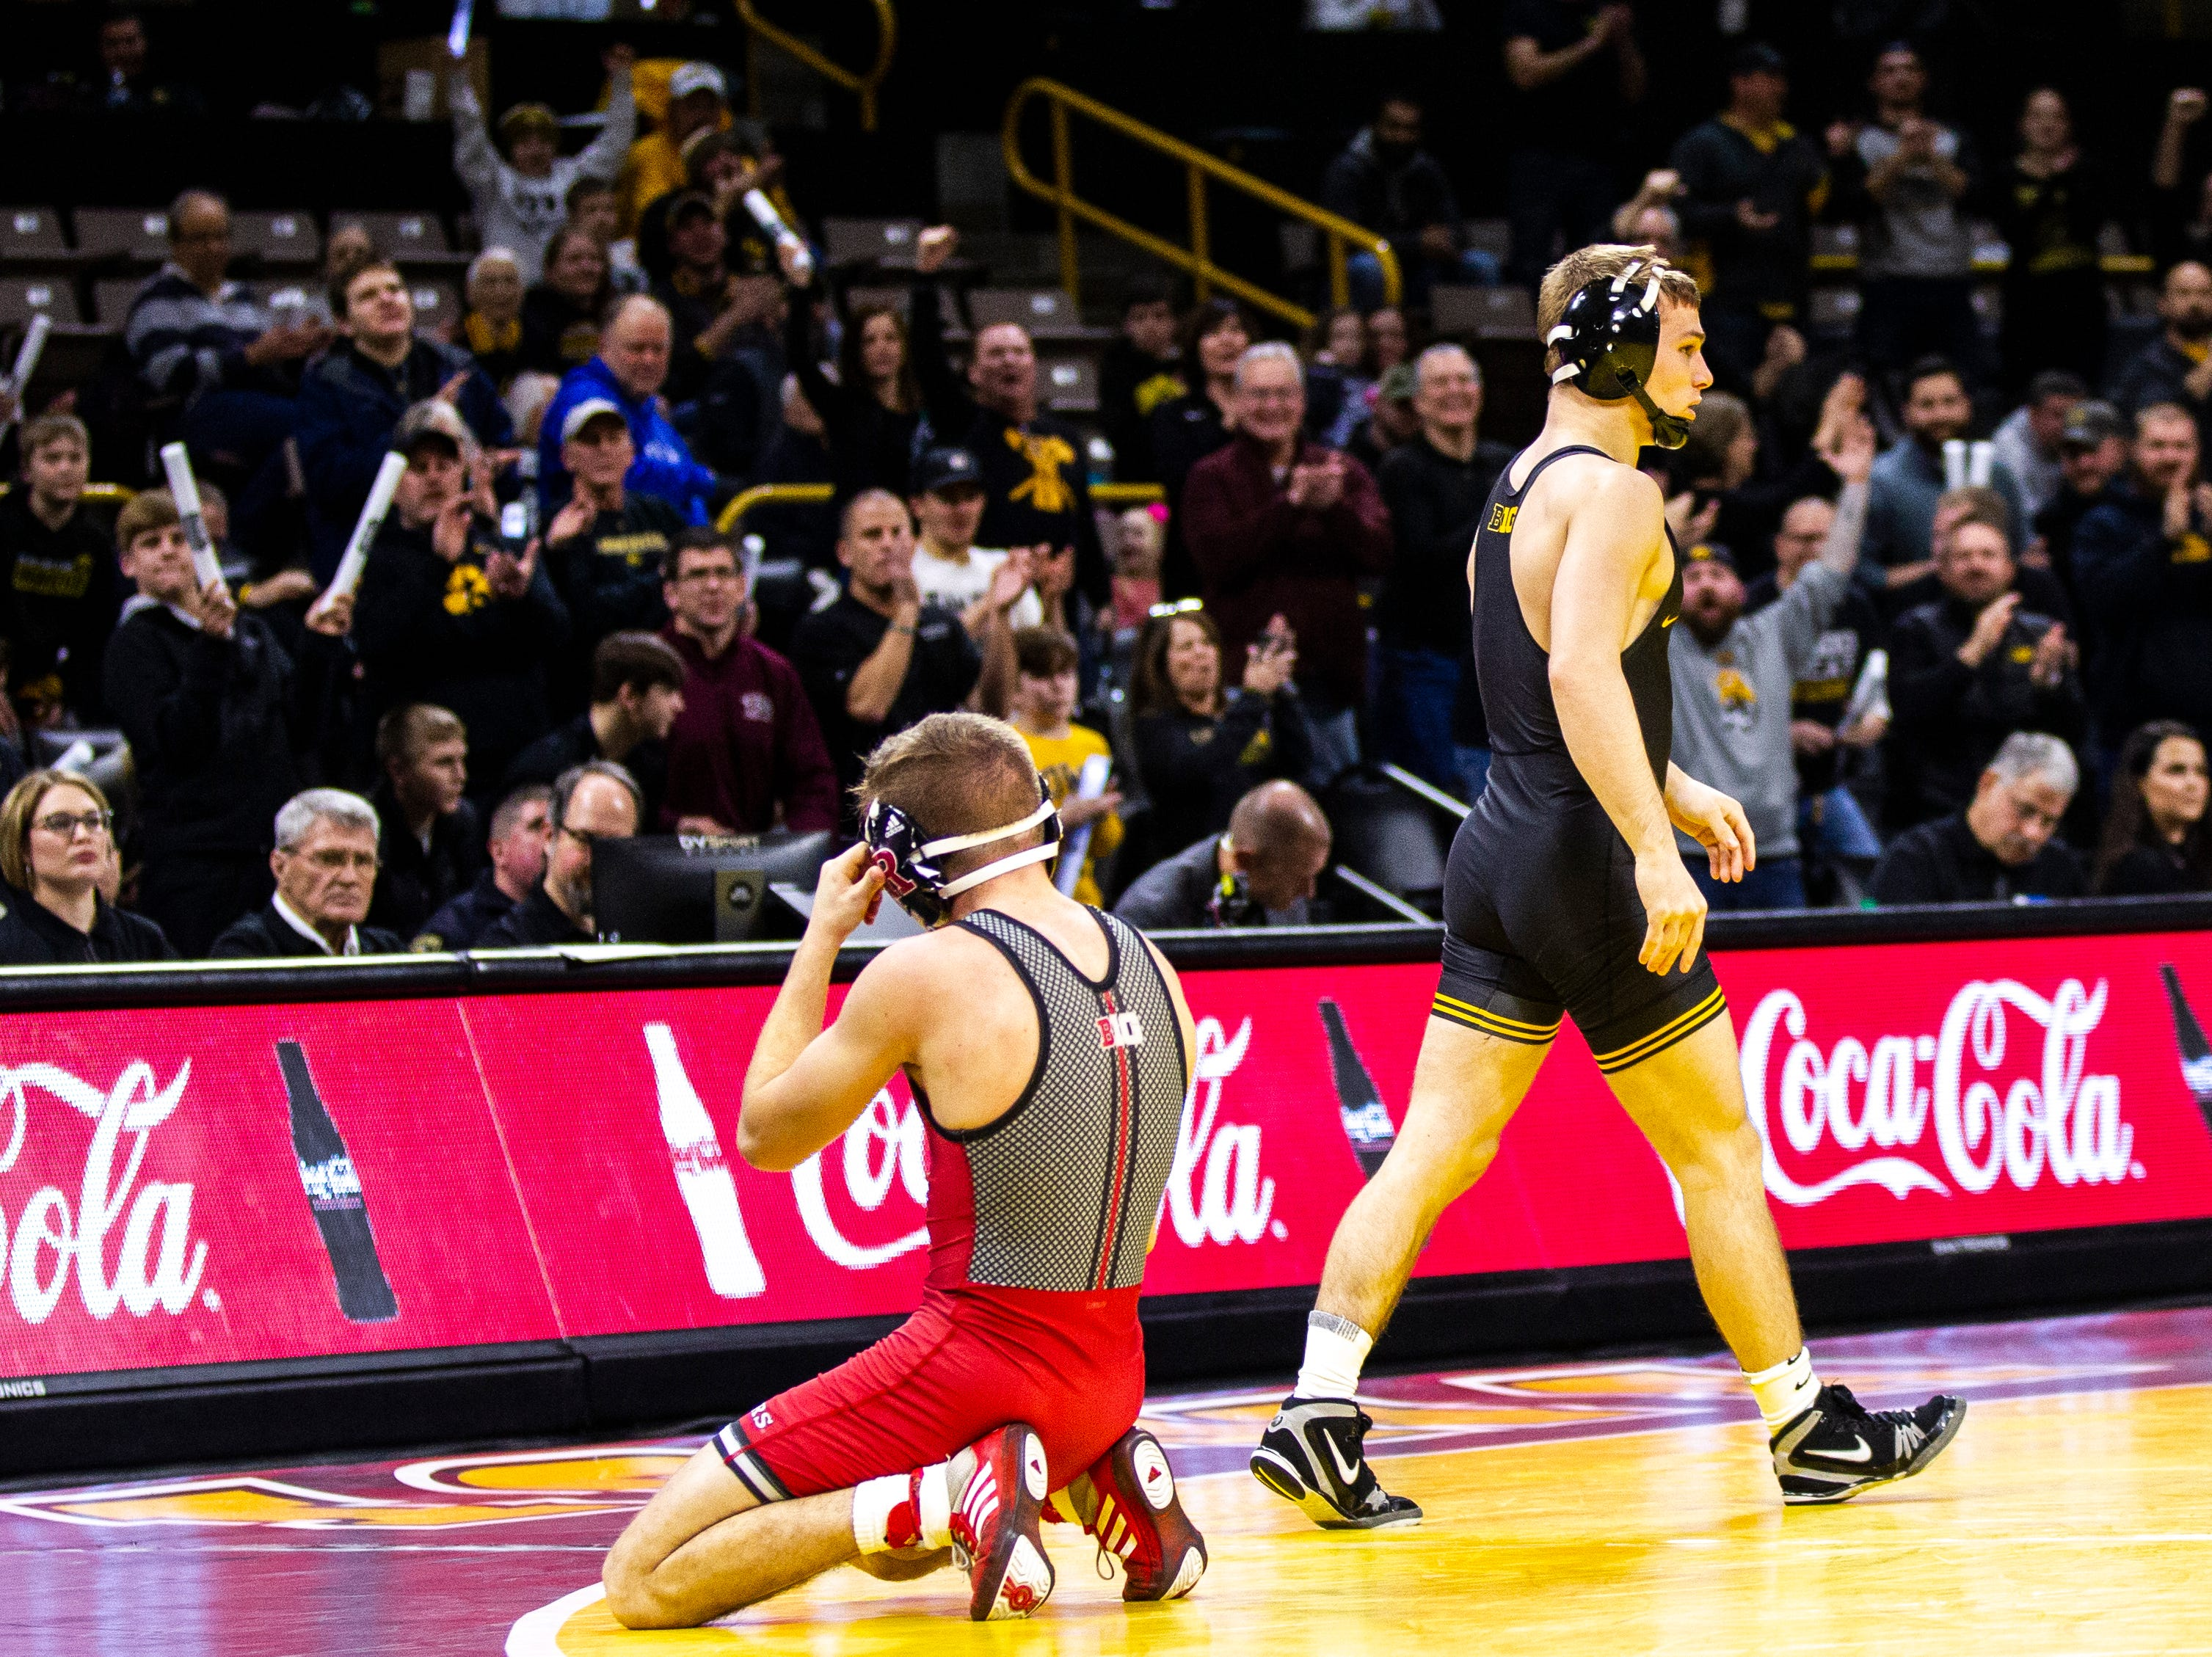 Iowa's Spencer Lee walks to the center of the mat after pinning Rutgers' Nick Denora at 125 during a NCAA Big Ten Conference wrestling dual on Friday, Jan. 18, 2019, at Carver-Hawkeye Arena in Iowa City, Iowa.